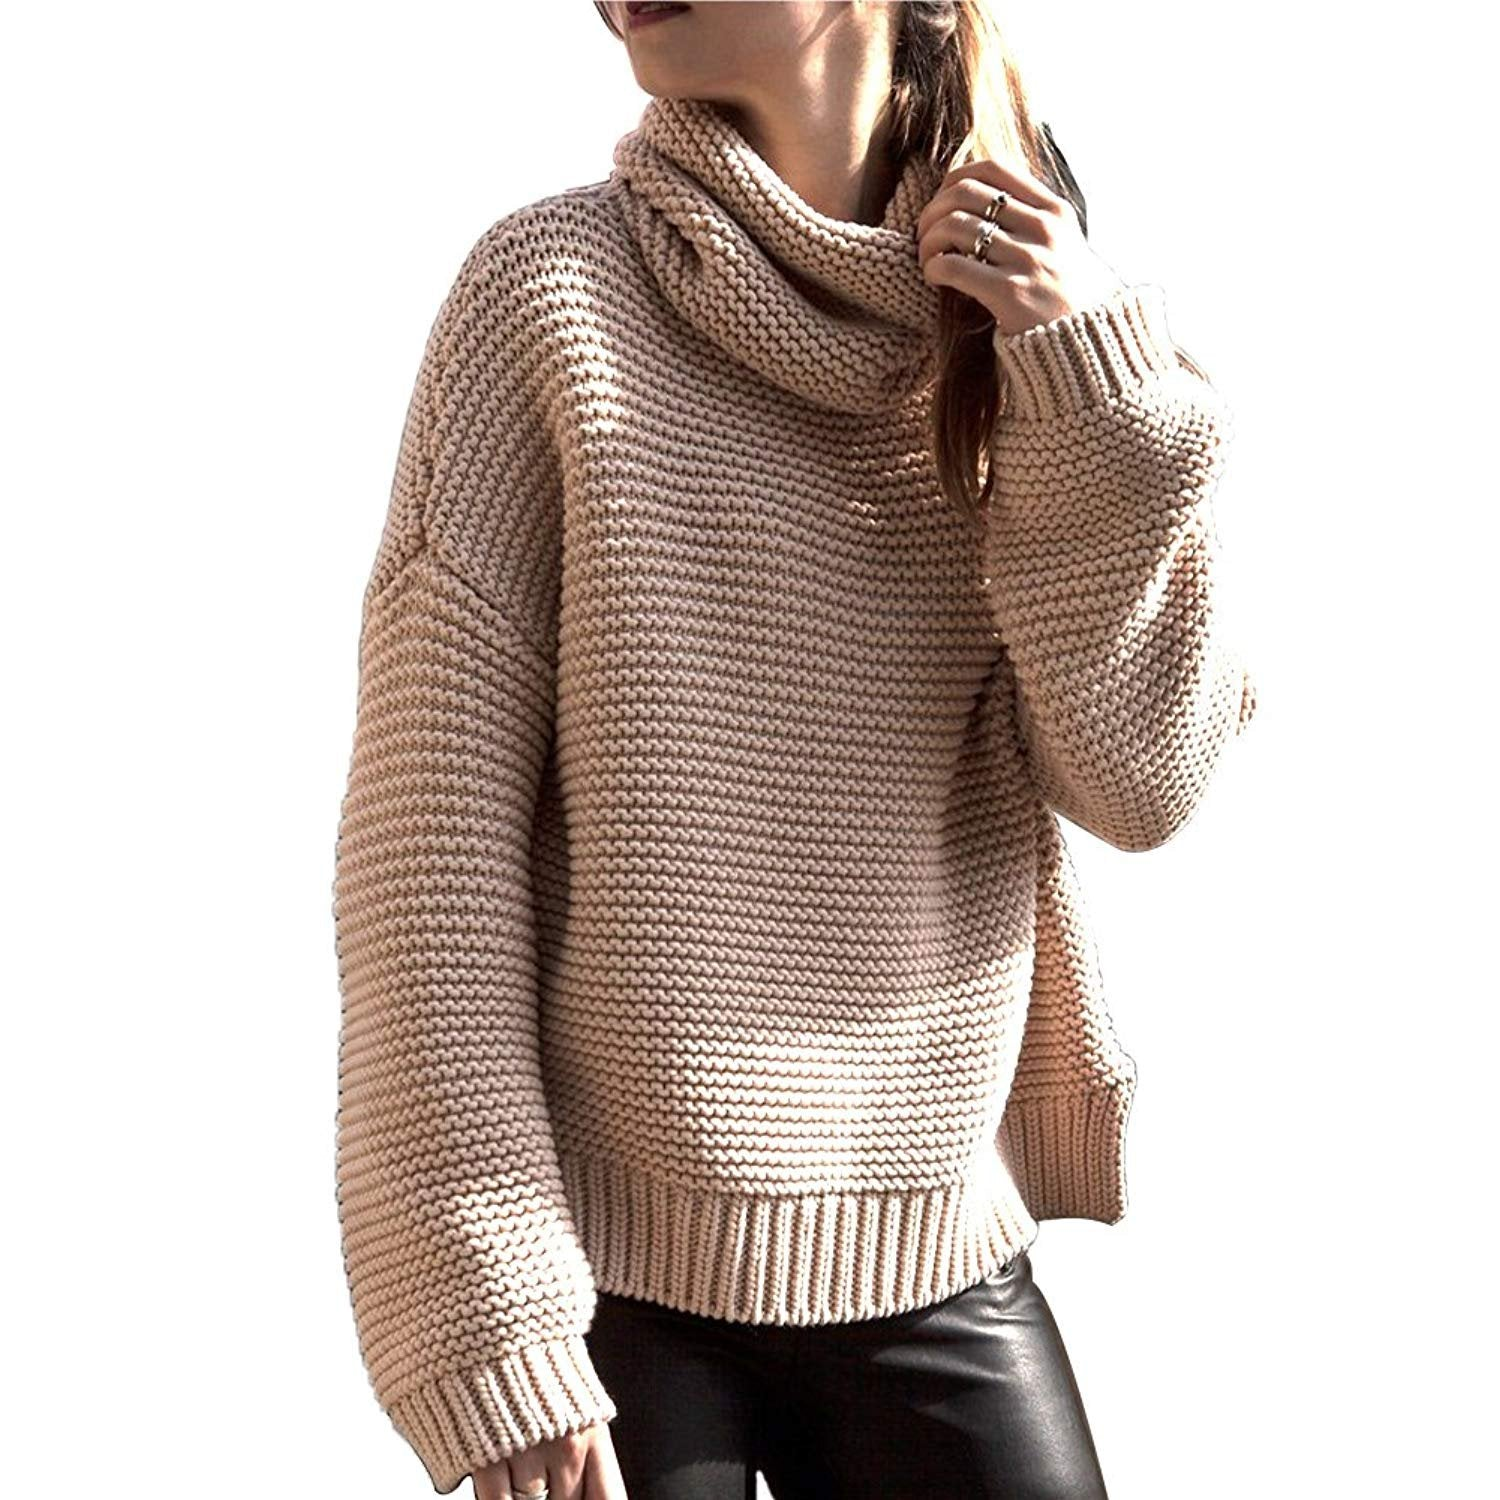 Long Sleeve Turtleneck Oversized Knit Sweater